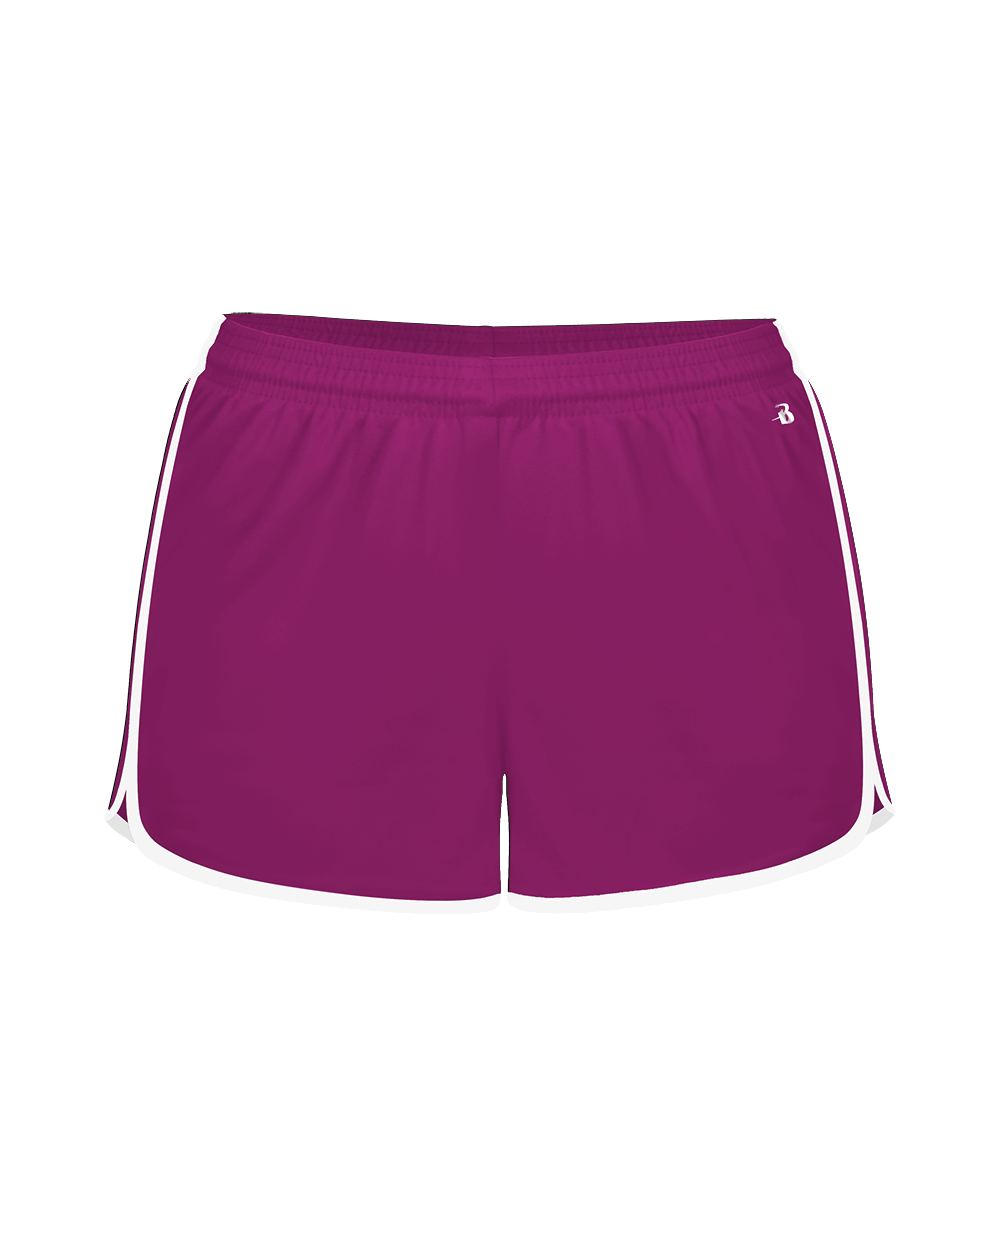 Velocity Girls' Short - Hot Pink/White